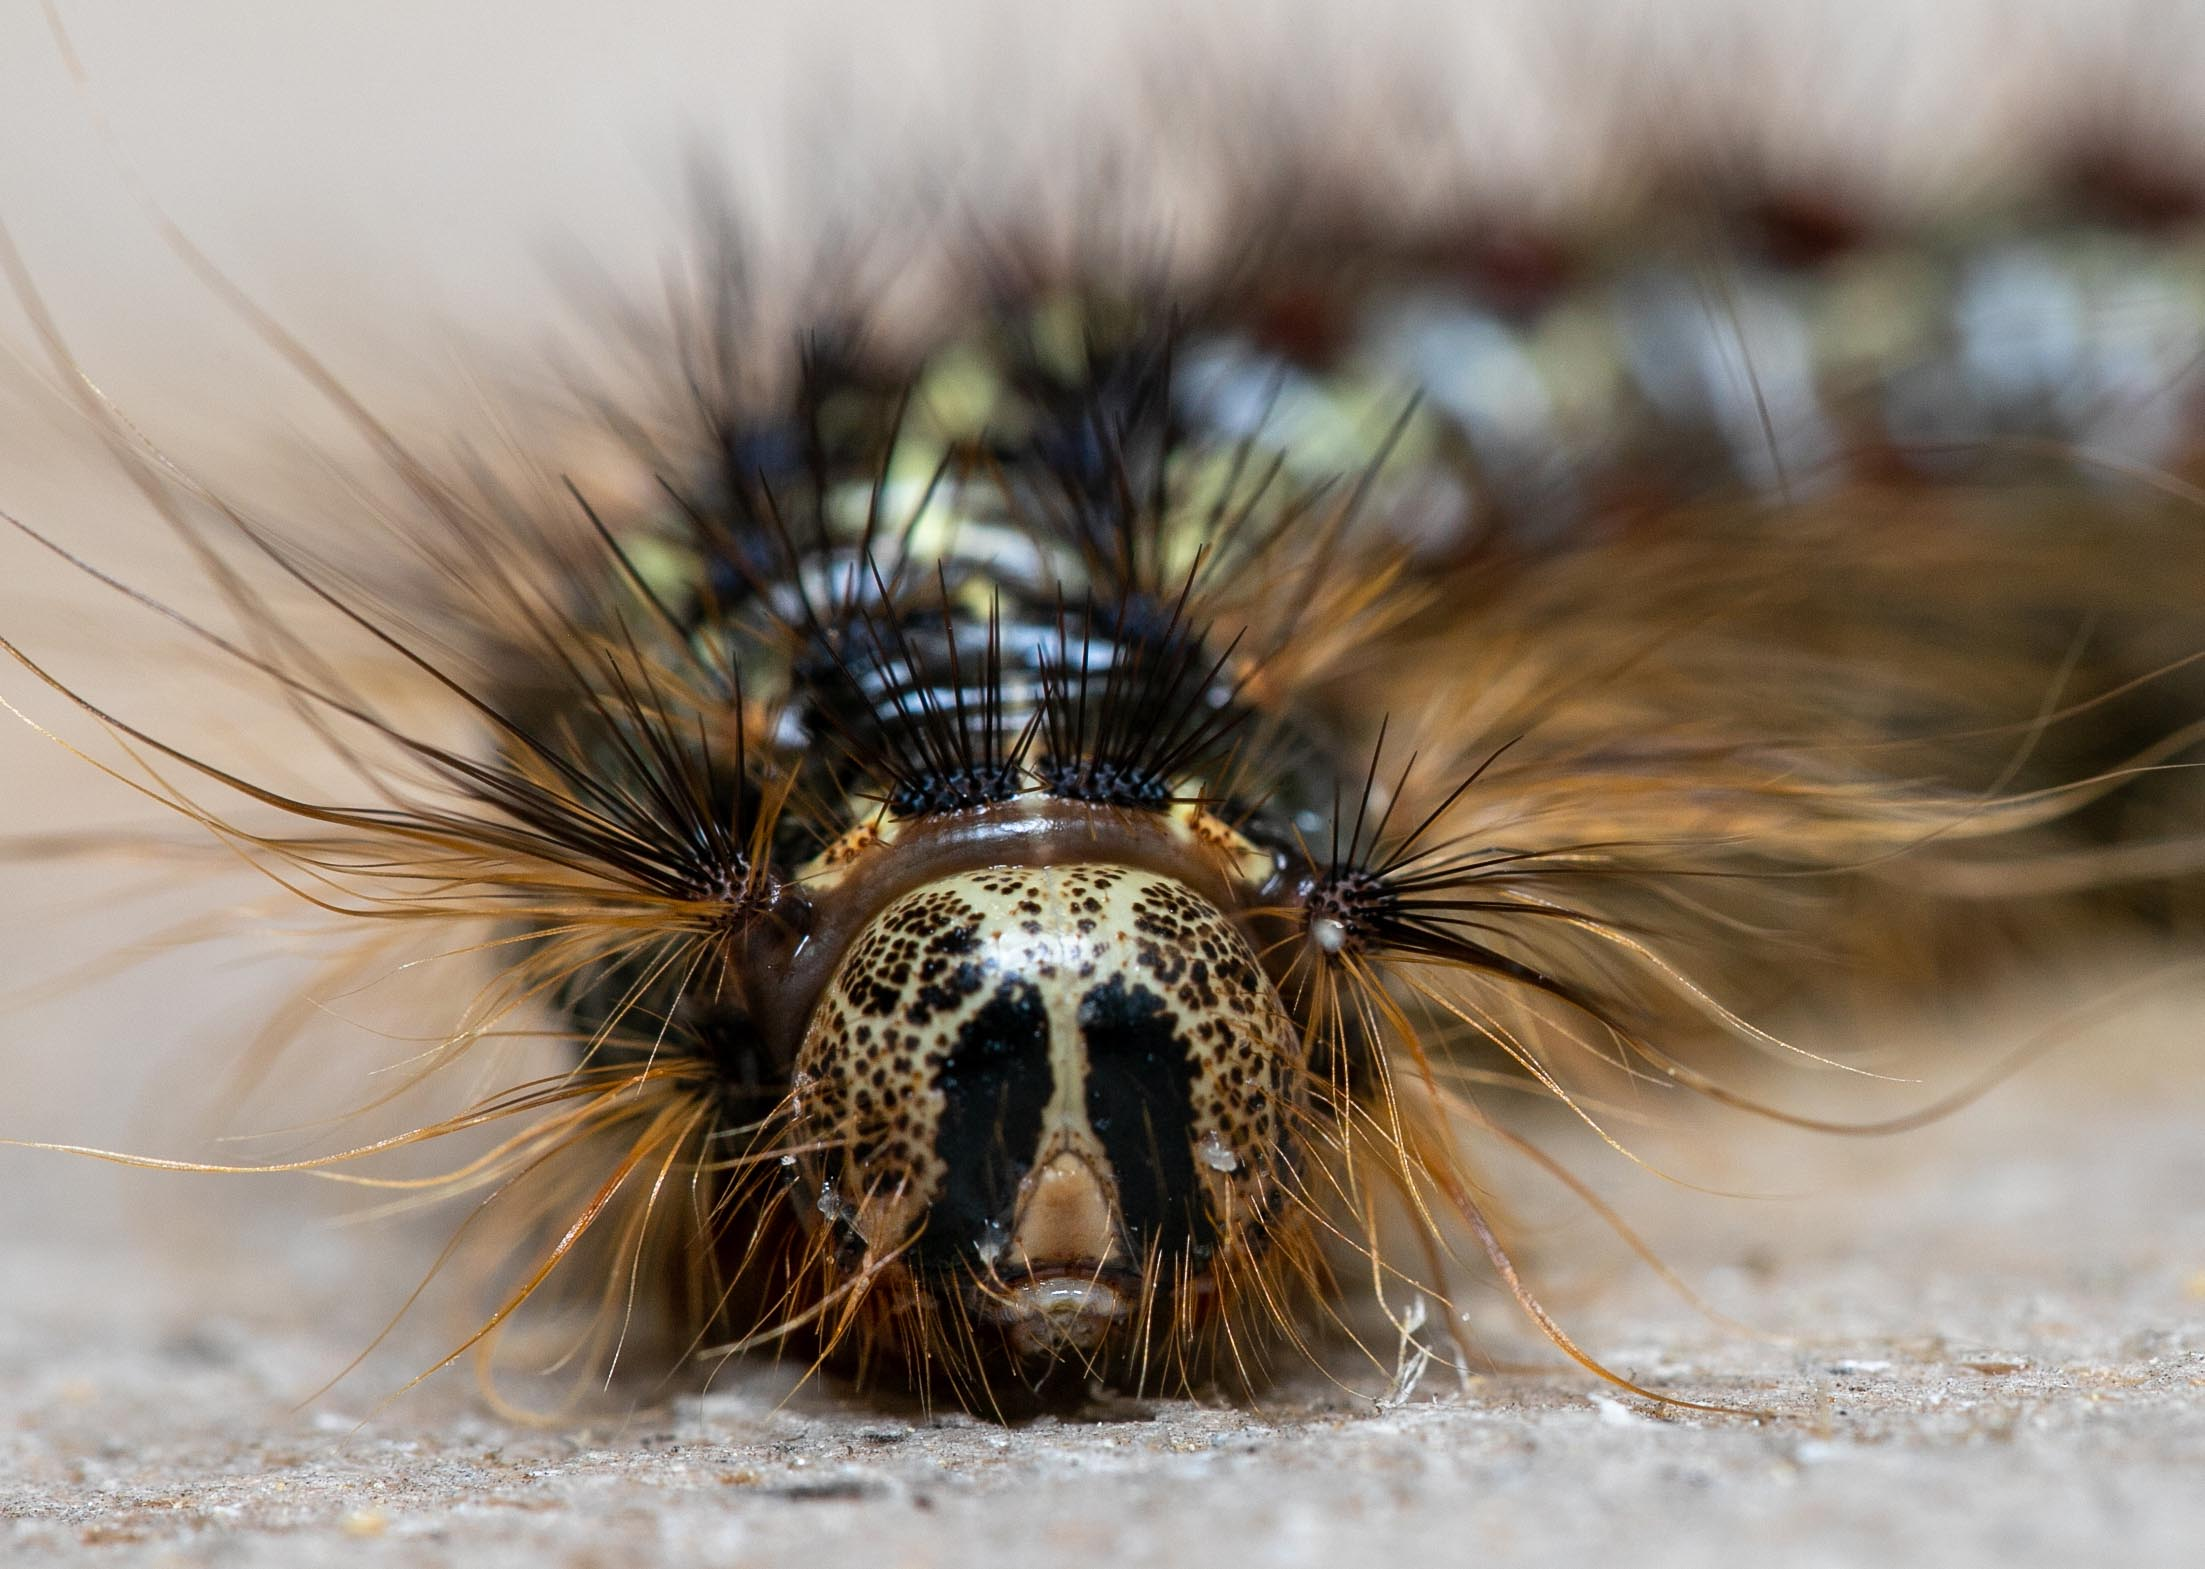 Lymantria dispar (caterpillar shown here) is one of the most destructive invasive insects in North America. Defoliation by this insect can kill oak trees by draining the trees' energy reserves. Photo credit: Nathan Oalican.